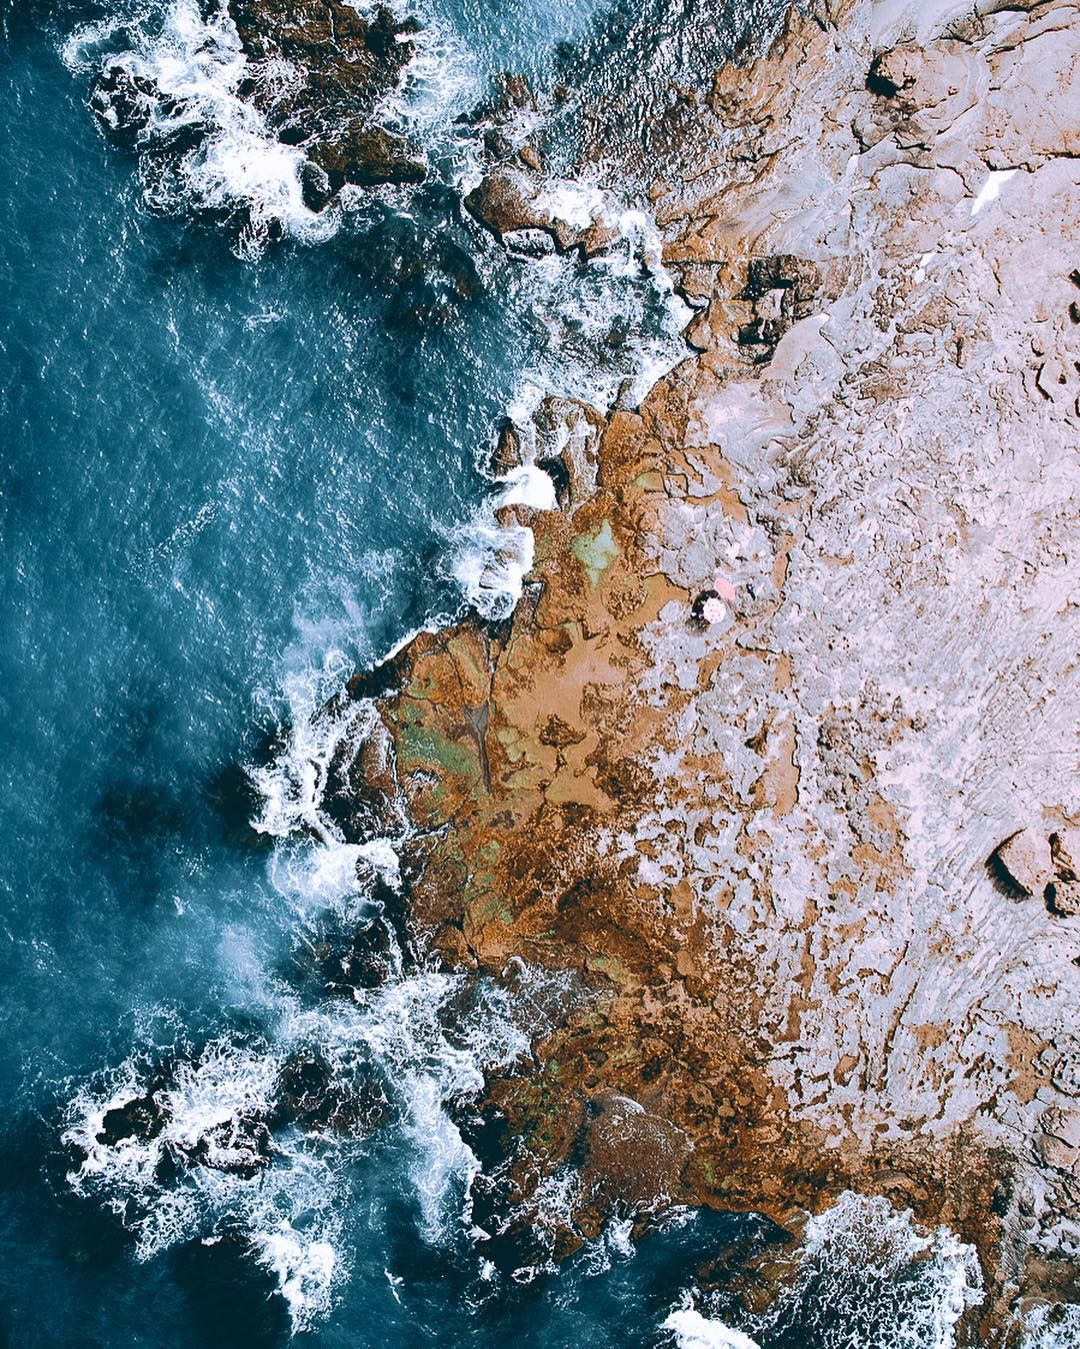 Stunning Drone Photography By Tobias Hagg Inspiration